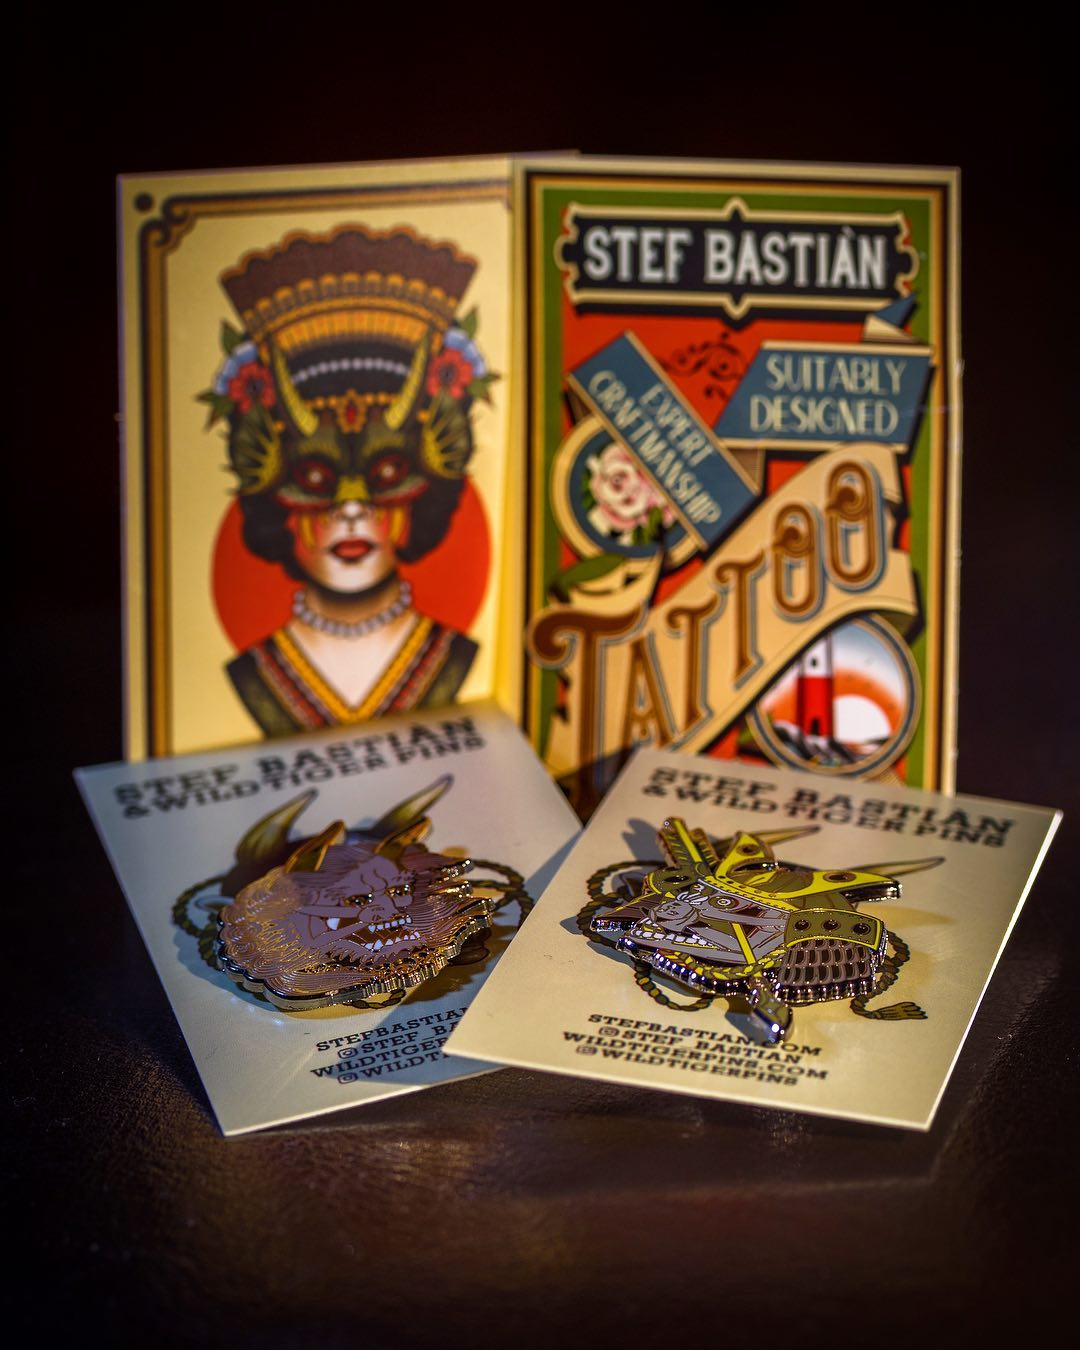 Super-stoked to have received these awesome enamel pins from my friend @stef_bas...